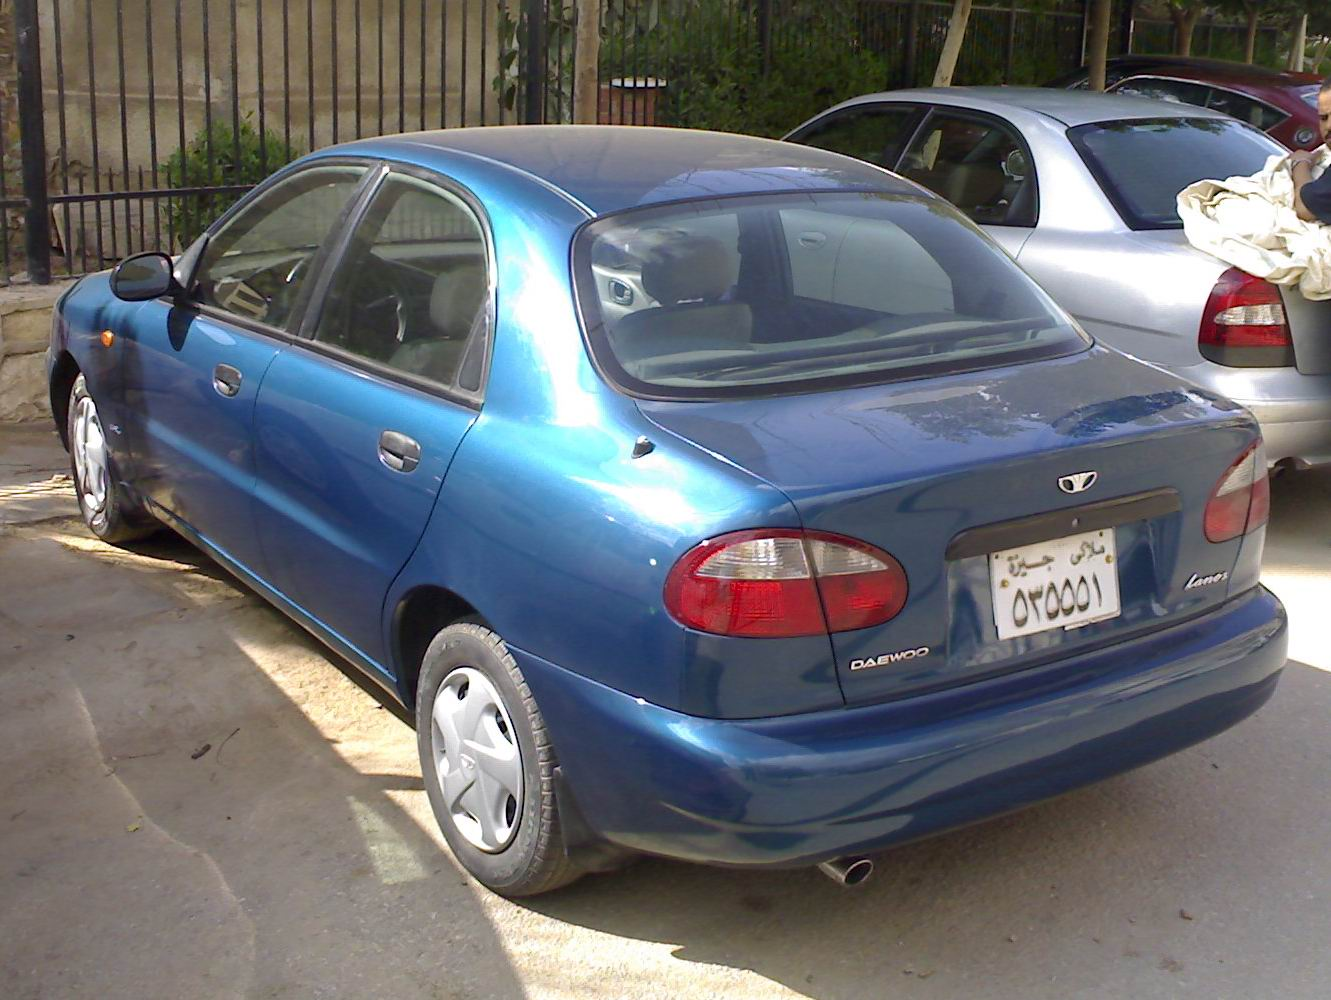 1999 Daewoo Lanos Photos, Informations, Articles - BestCarMag.com